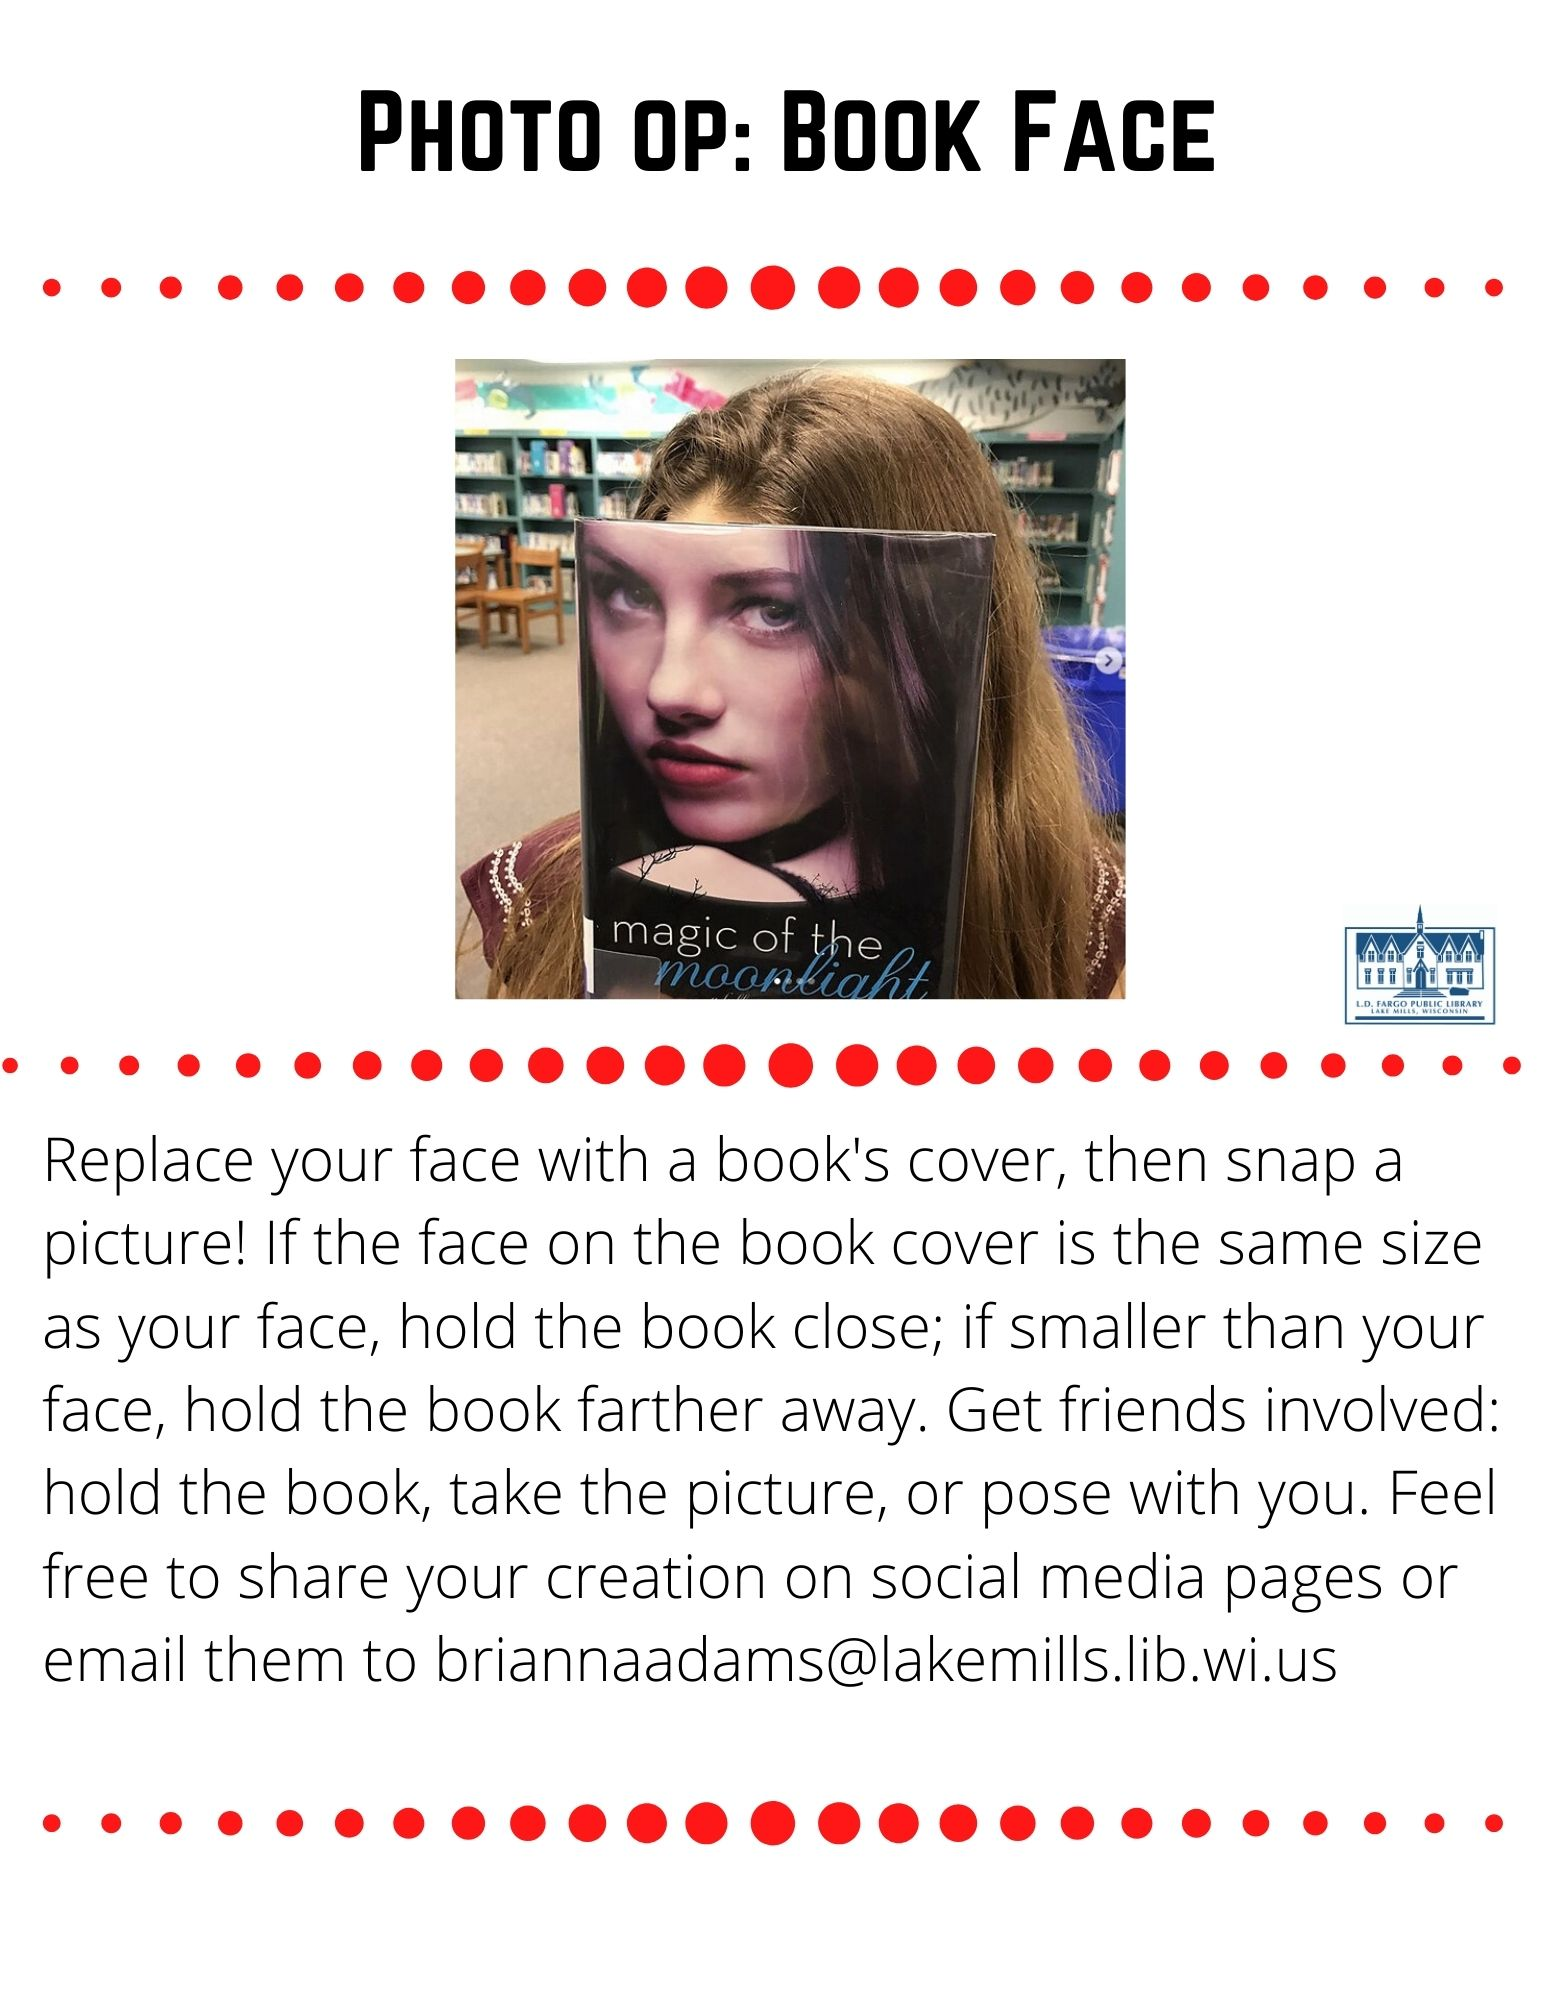 Photo op: Book Face  Replace your face with a book's cover, then snap a picture! If the face on the book cover is the same size as your face, hold the book close; if smaller than your face, hold the book farther away. Get friends involved: have them hold the book, take the picture, or pose with you. Feel free to share your creation on our social media pages or email them to briannaadams@lakemills.lib.wi.us